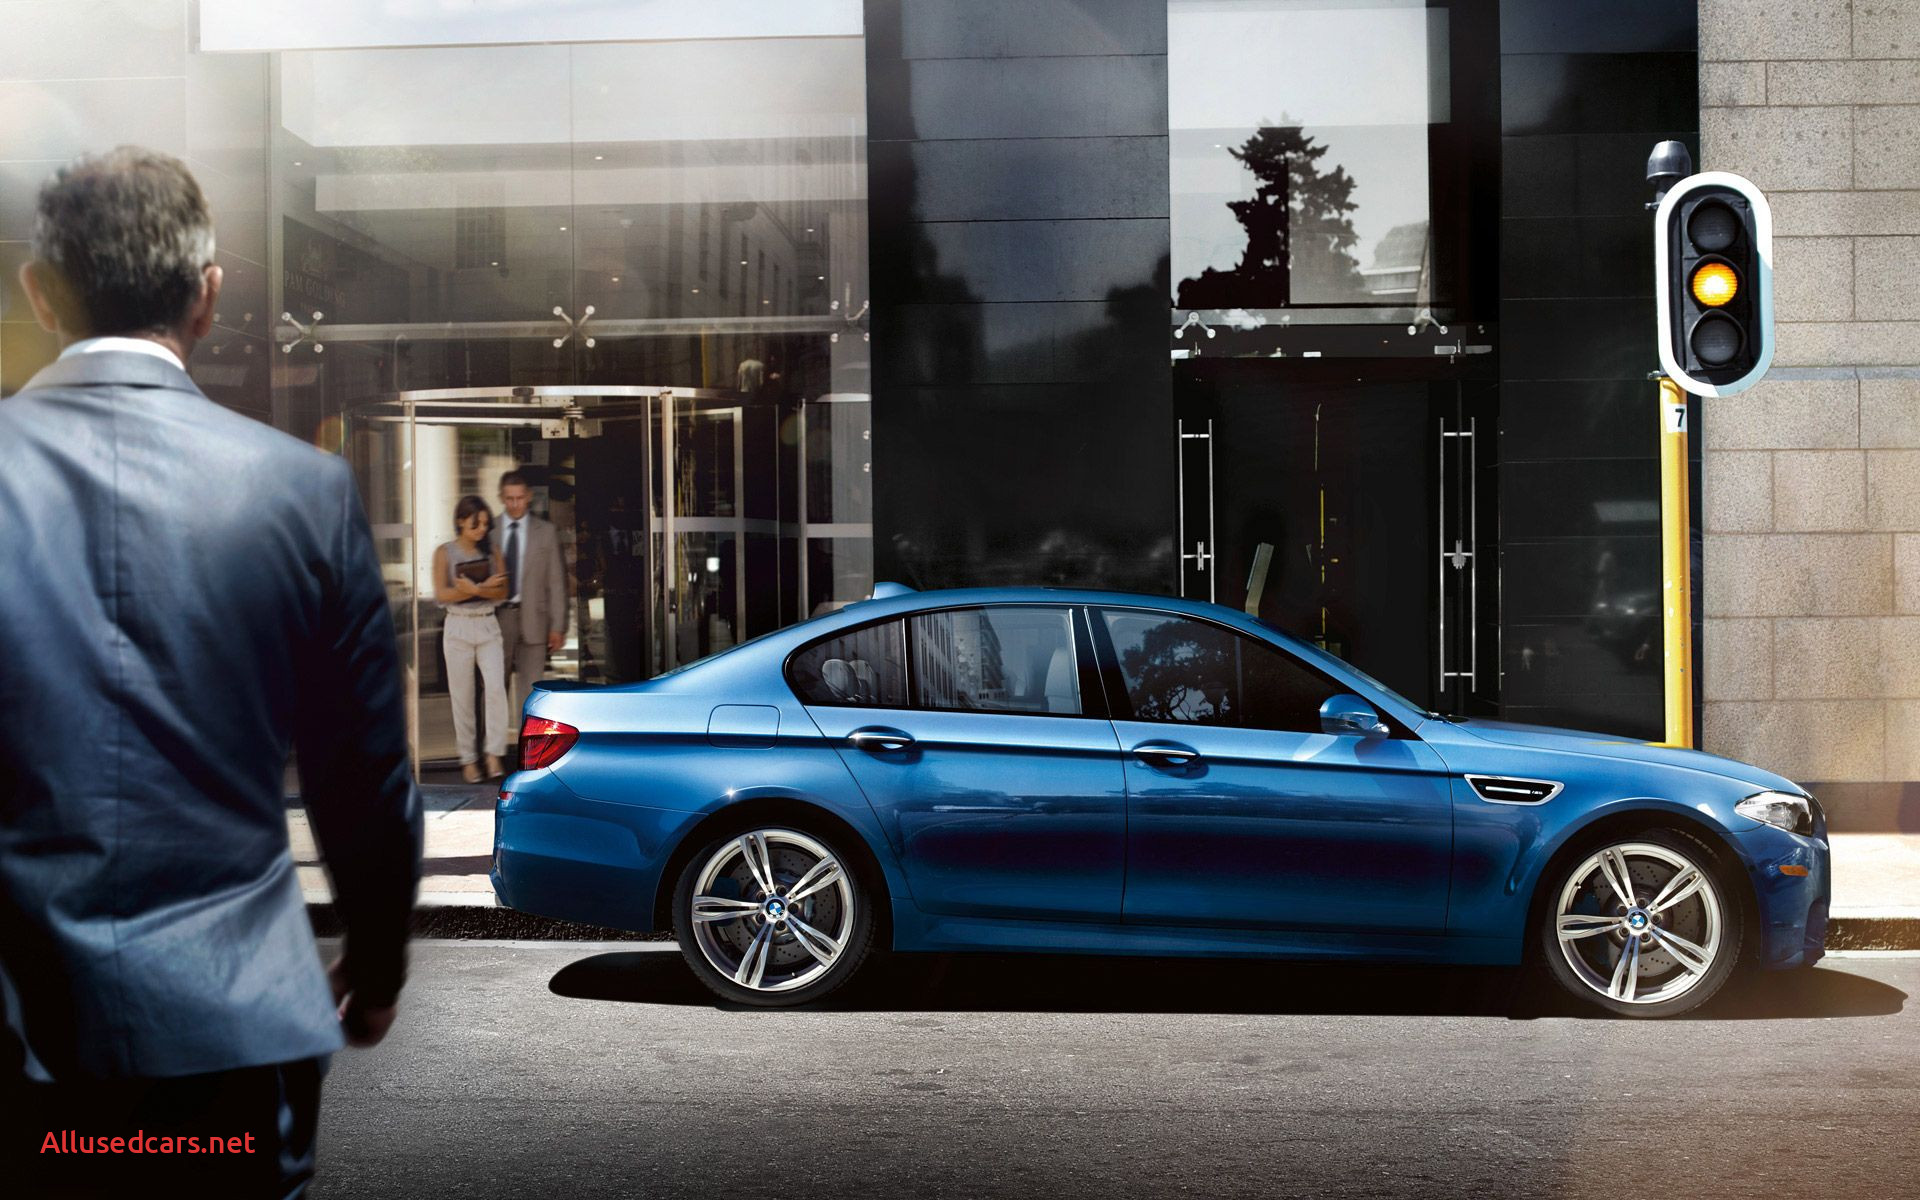 Bmw 2013 Inspirational 2013 Bmw M5 I Ll It Used In 2018 or 2019 after I Ve Had